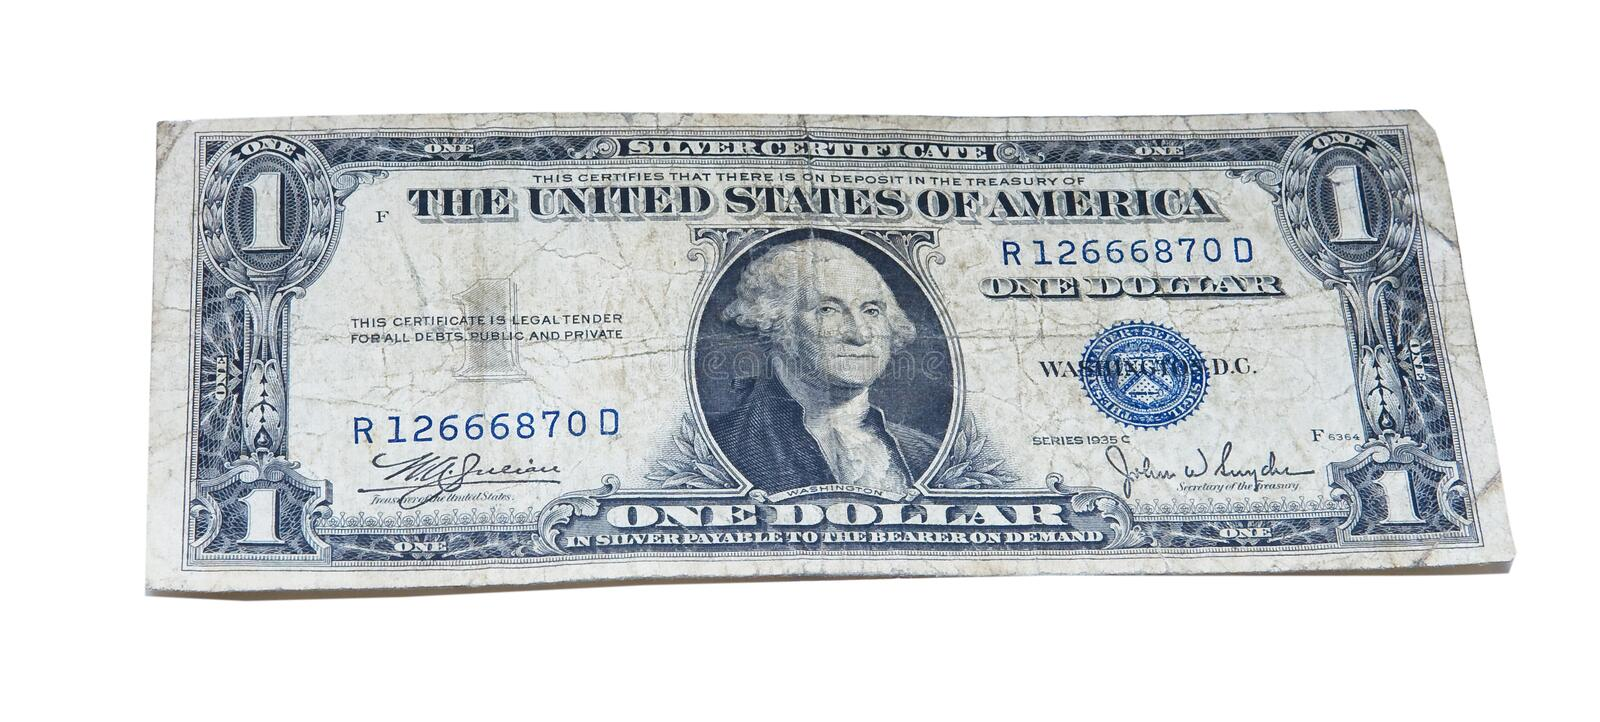 Vintage Old American Dollar Bill stock images